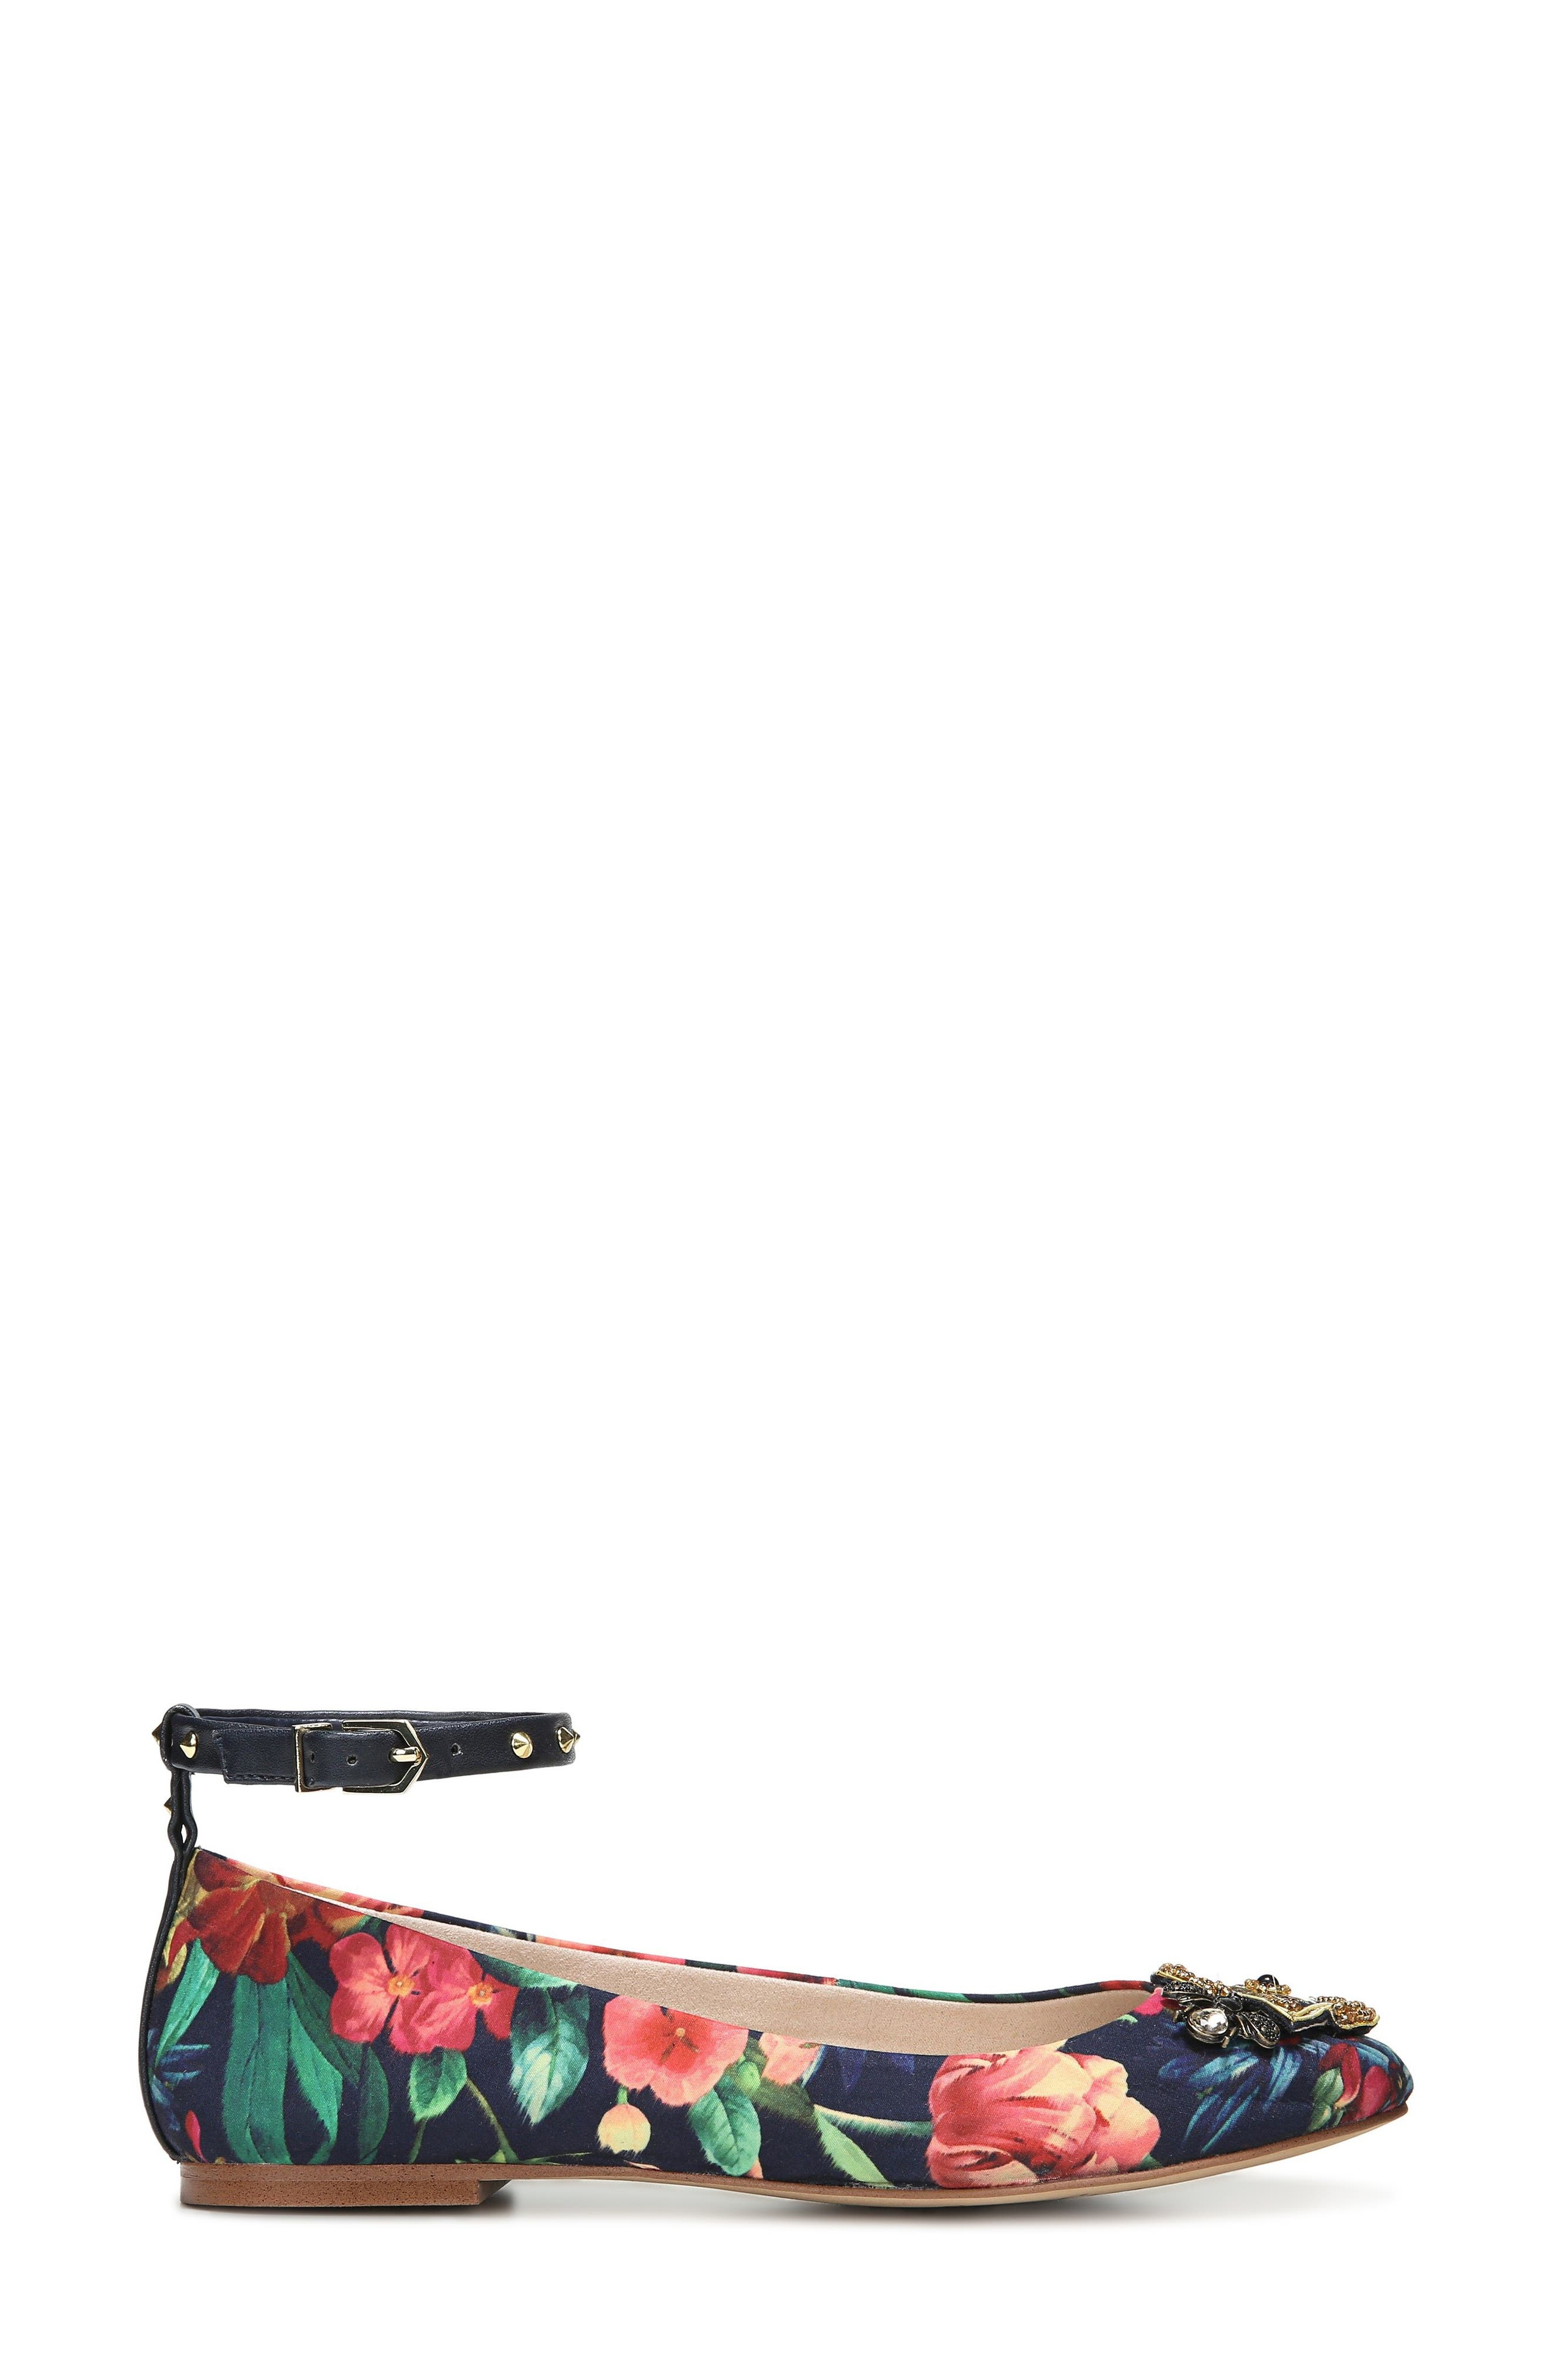 Ferrera Embellished Ankle Strap Flat,                             Alternate thumbnail 4, color,                             Navy Floral Fabric